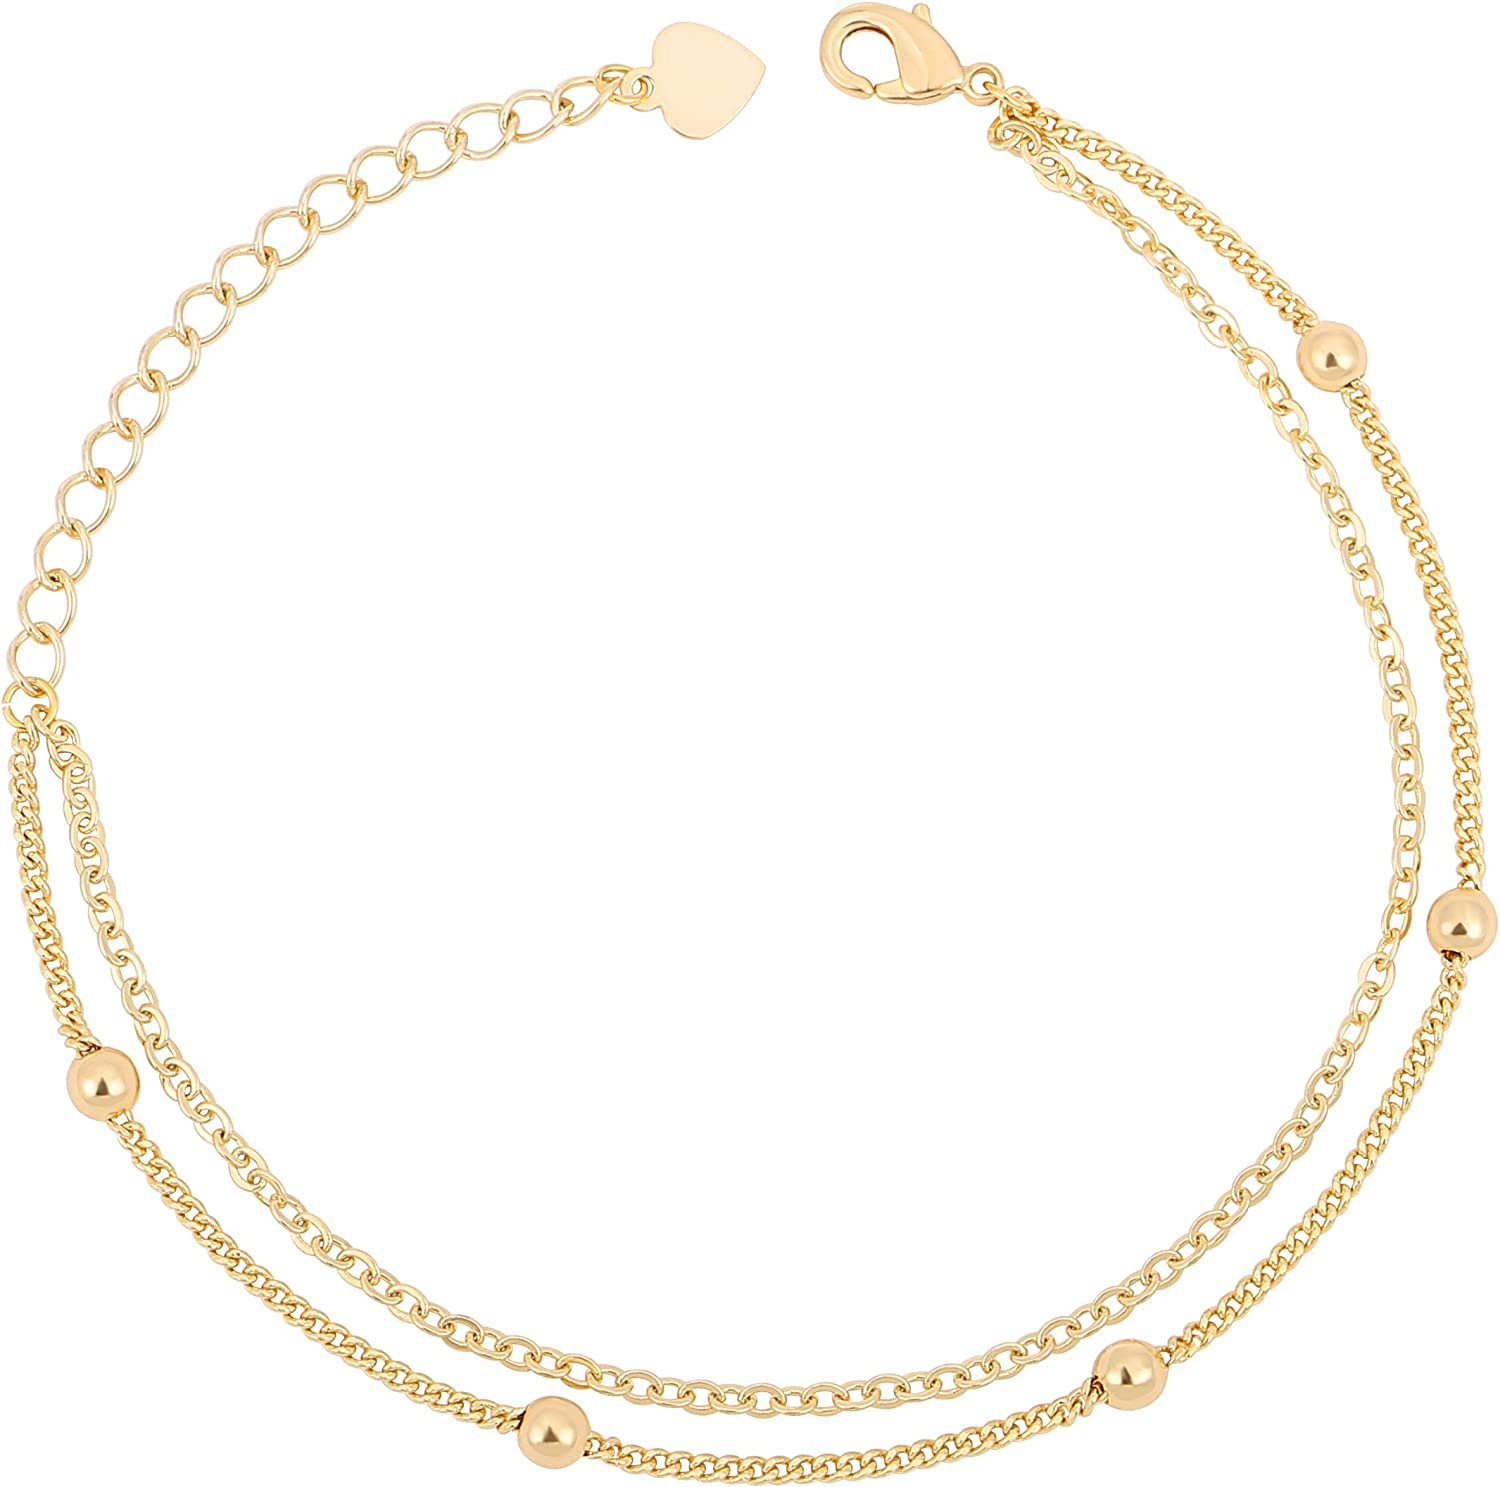 18K Gold Chain Popular shop is the lowest price challenge Bracelet Tiny Great interest Pearl Turquoise Eye Lucky Evil Link